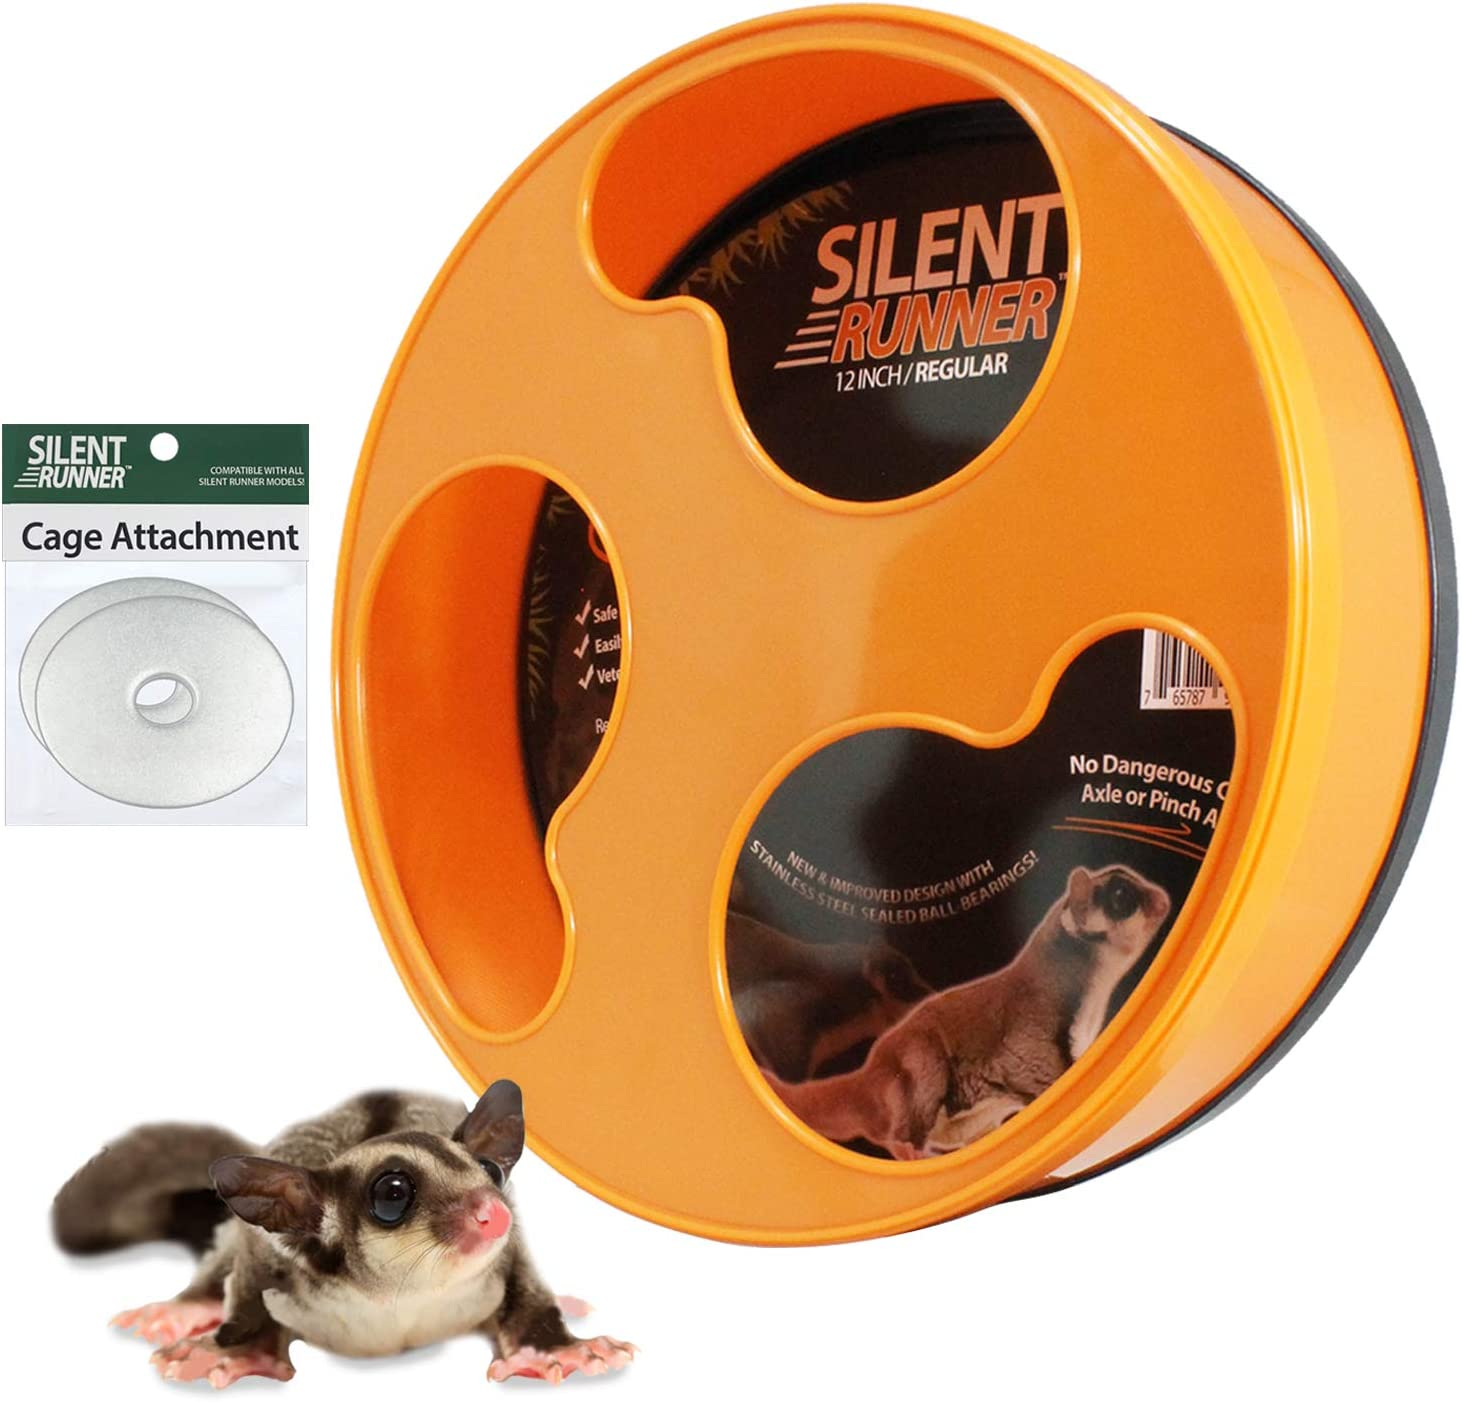 NO Stand Exotic Nutrition Silent Runner 12 Regular - for Sugar Gliders Hamsters Cage Attachment Hardware Mice and Other Small Pets Durable Exercise Wheel Female Rats